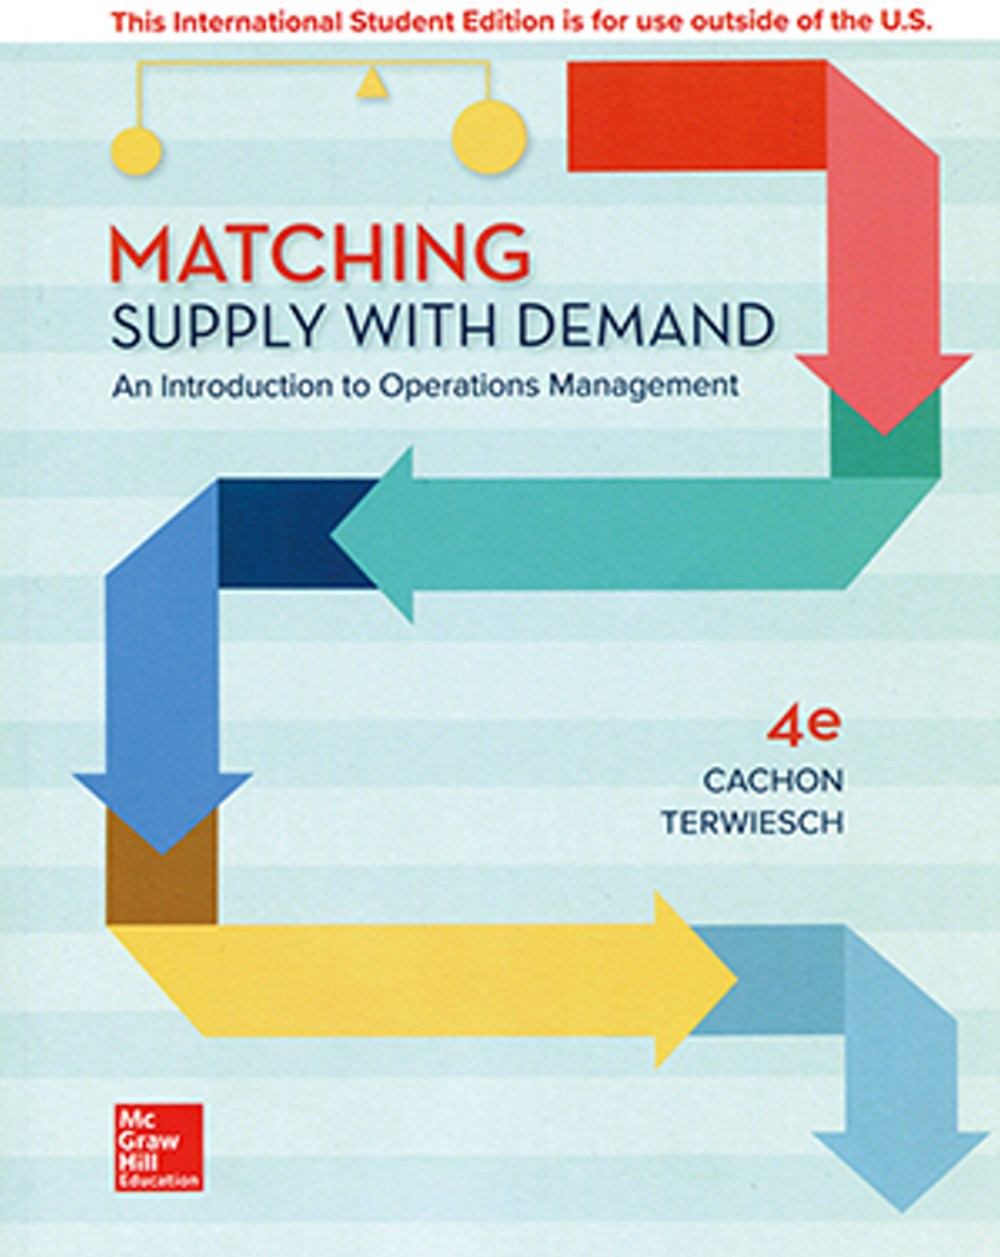 Matching Supply With Demand: An Introduction to Operations Management(4版)